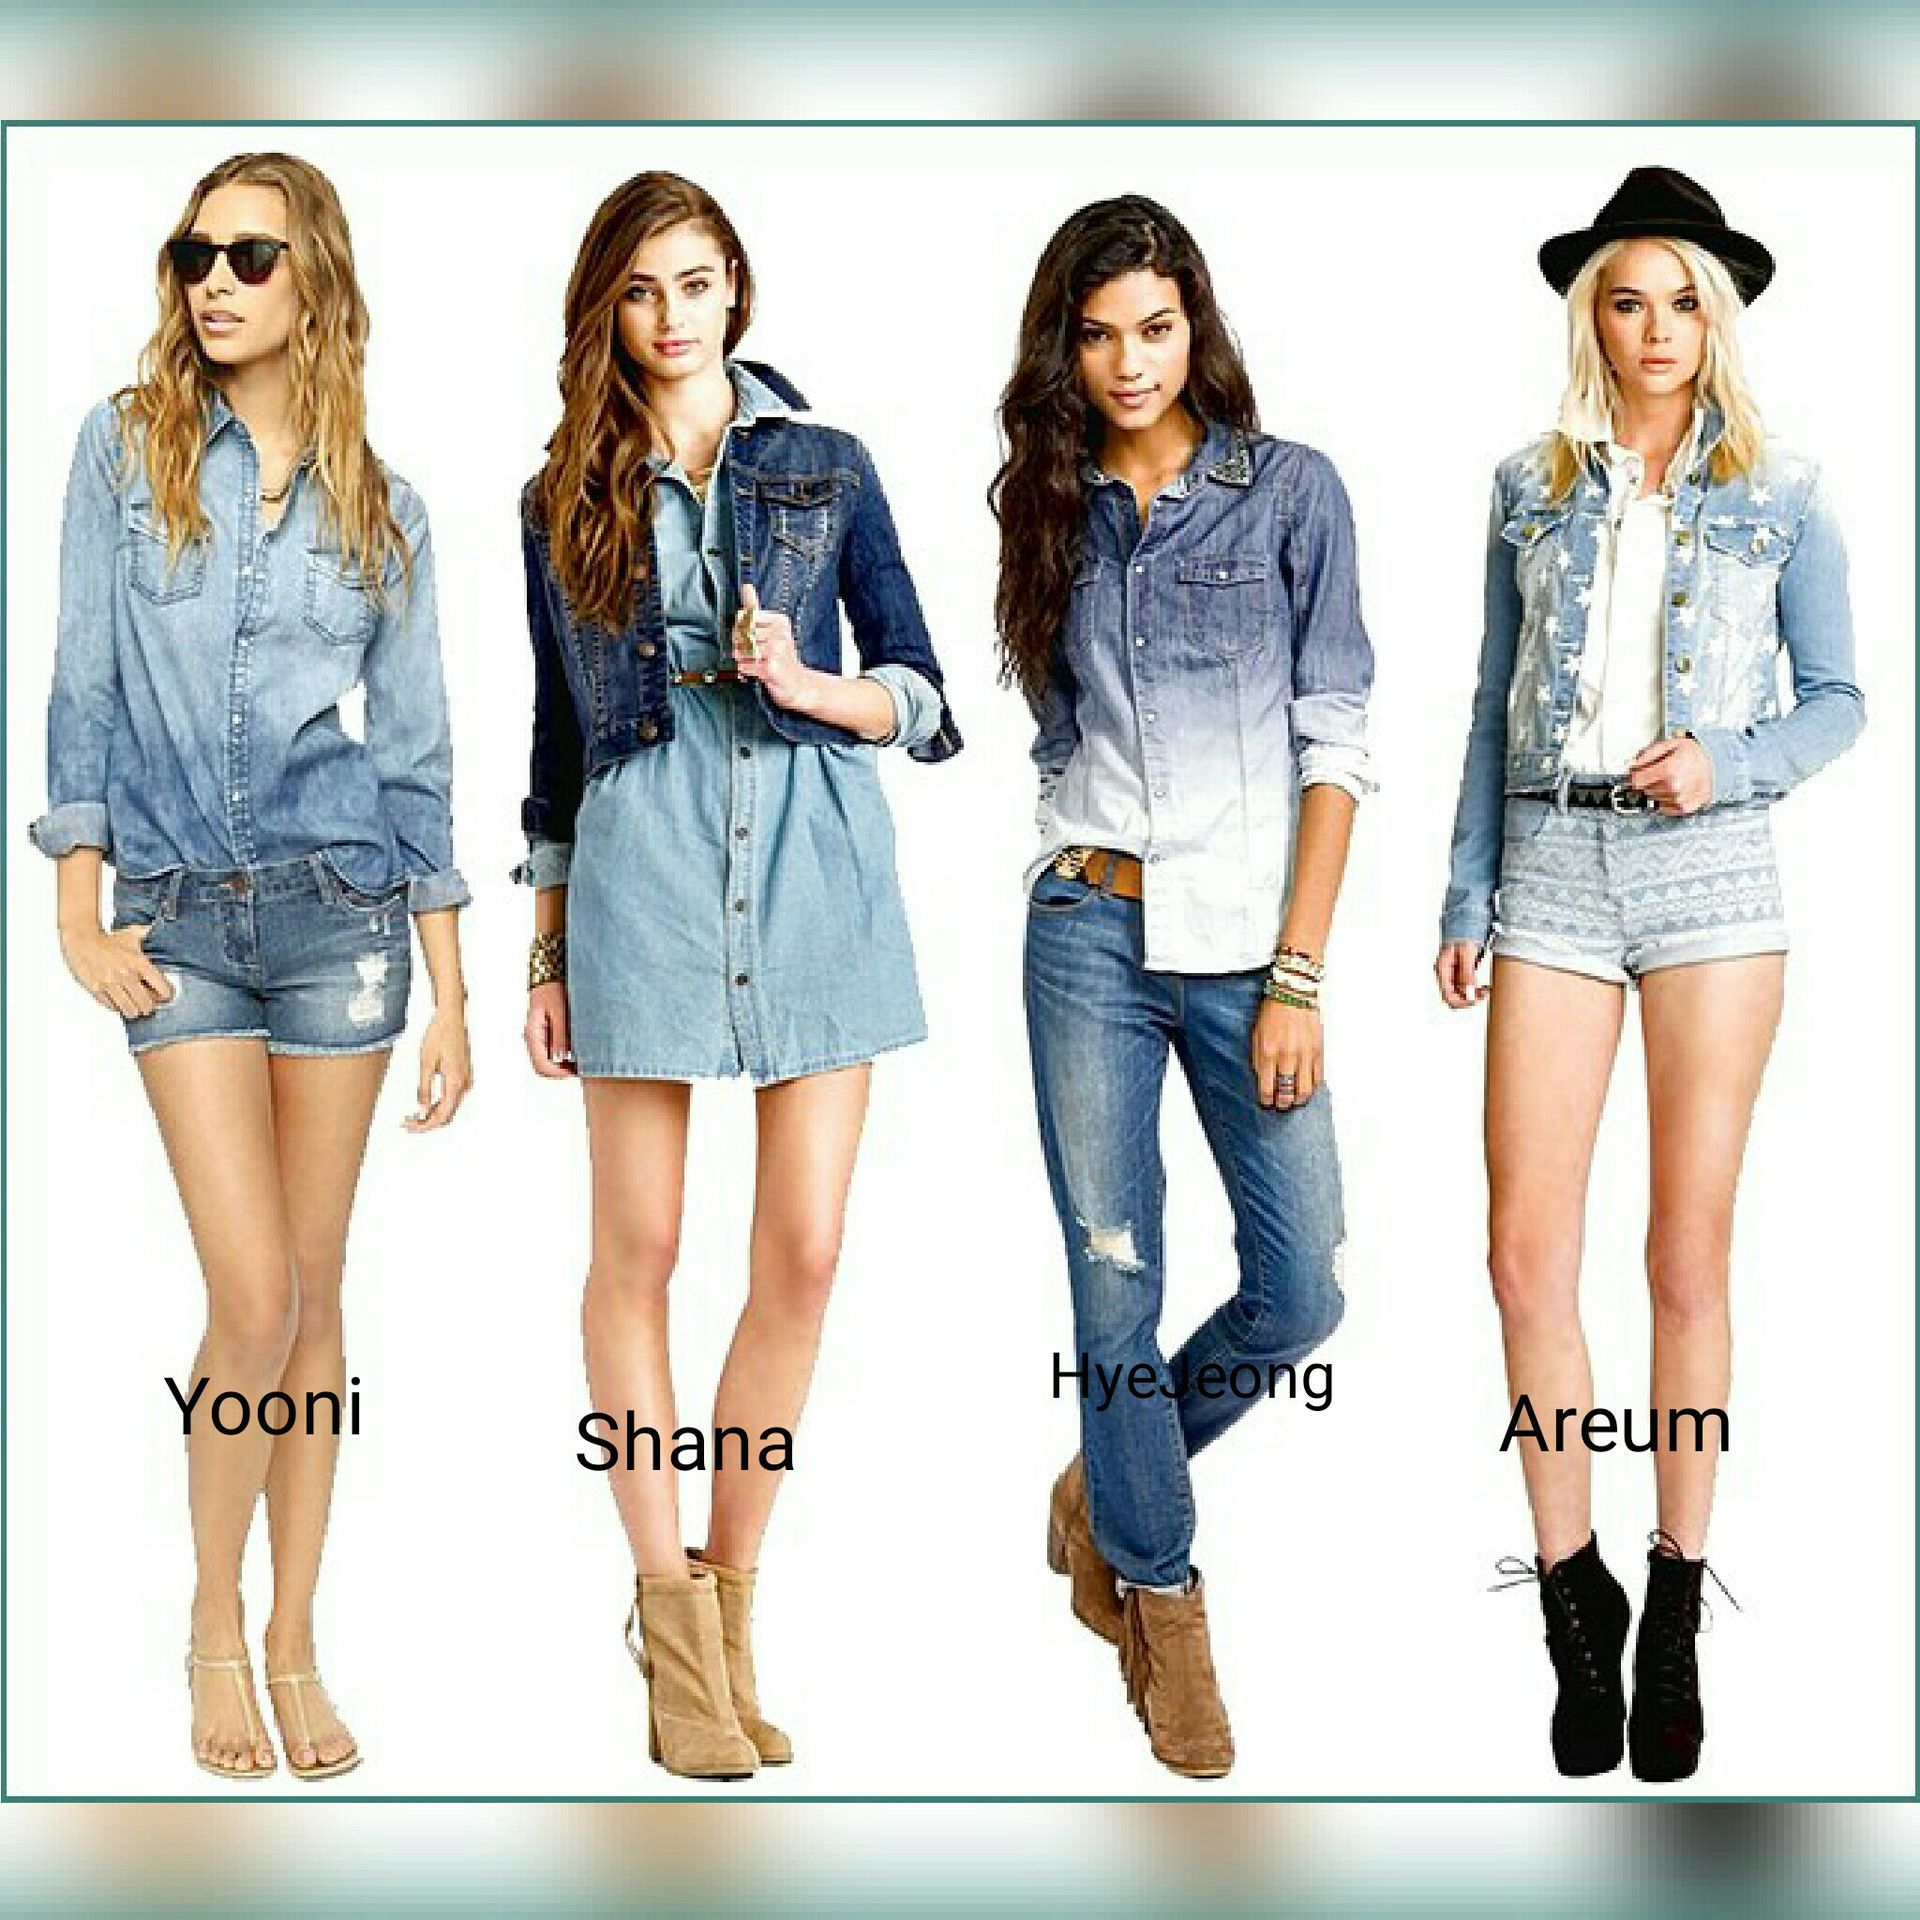 Amazon Fashion Clothing, Shoes Jewelry Fashion today for girls